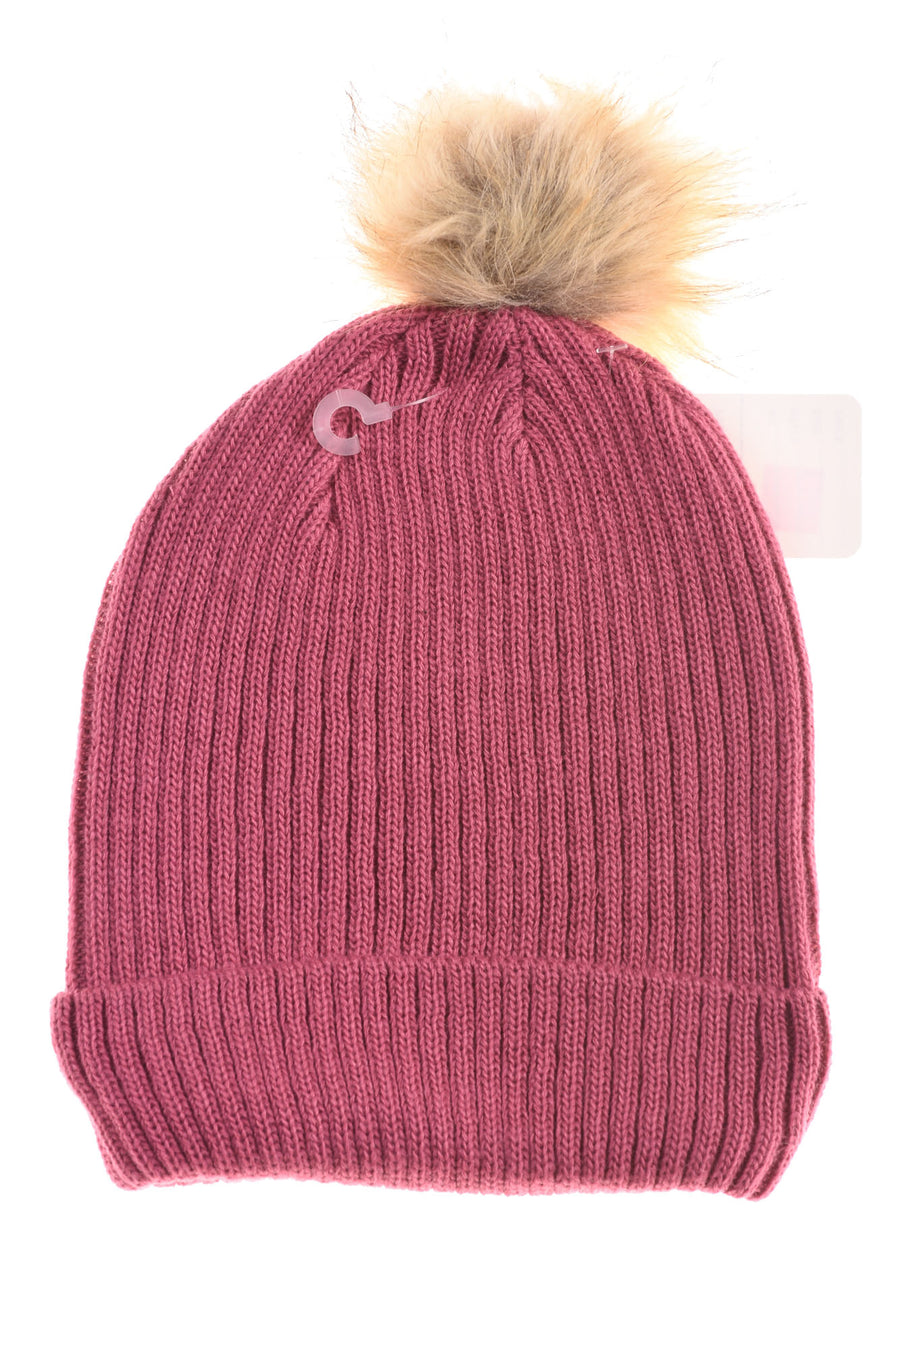 NEW No Brand Women's Hat One Size Pink